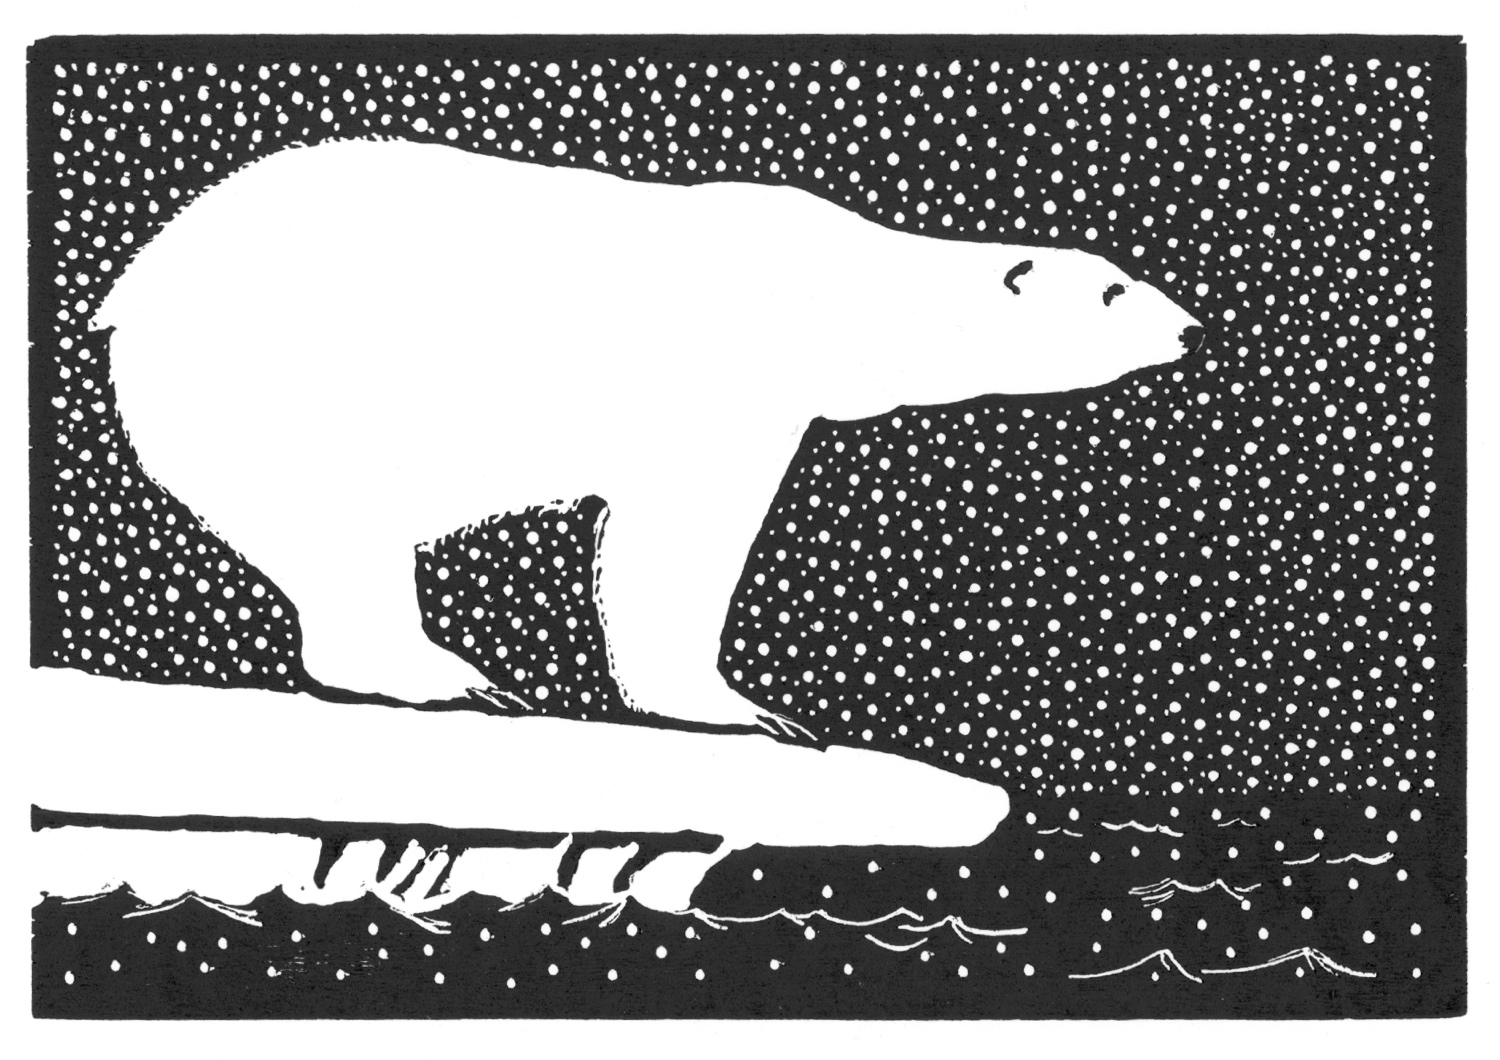 Polar Bear • © Fred Montague  $48 • image 8 x 5.5 • mat 14 x 11  Edition size: 88 • status: available